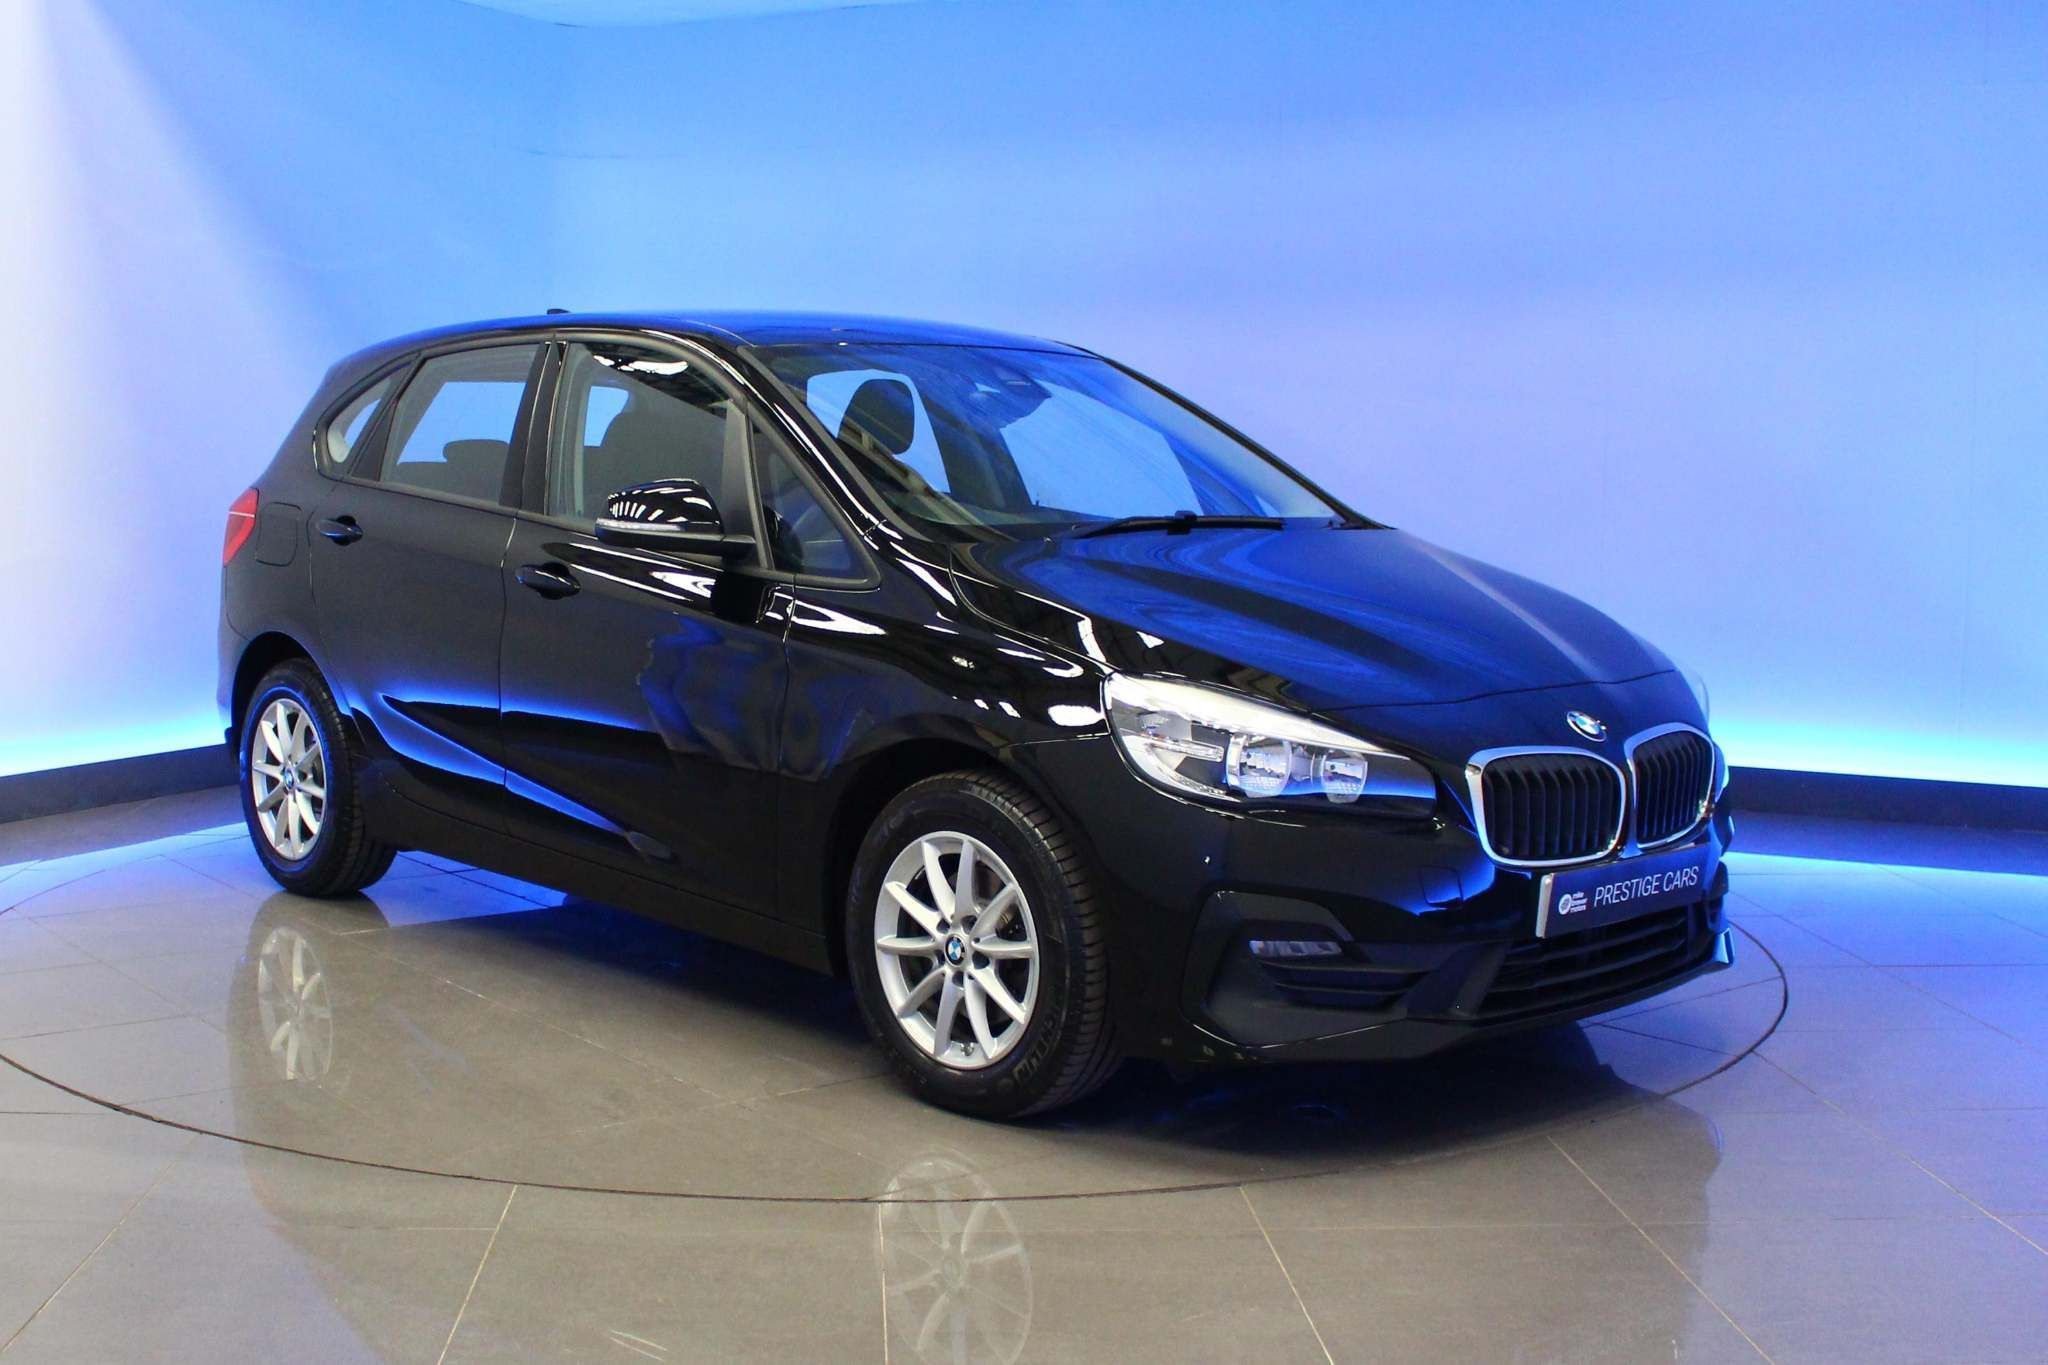 Used BMW 2 Series Active Tourer 1.5 218i Se Active Tourer Dct (s/s) 5dr